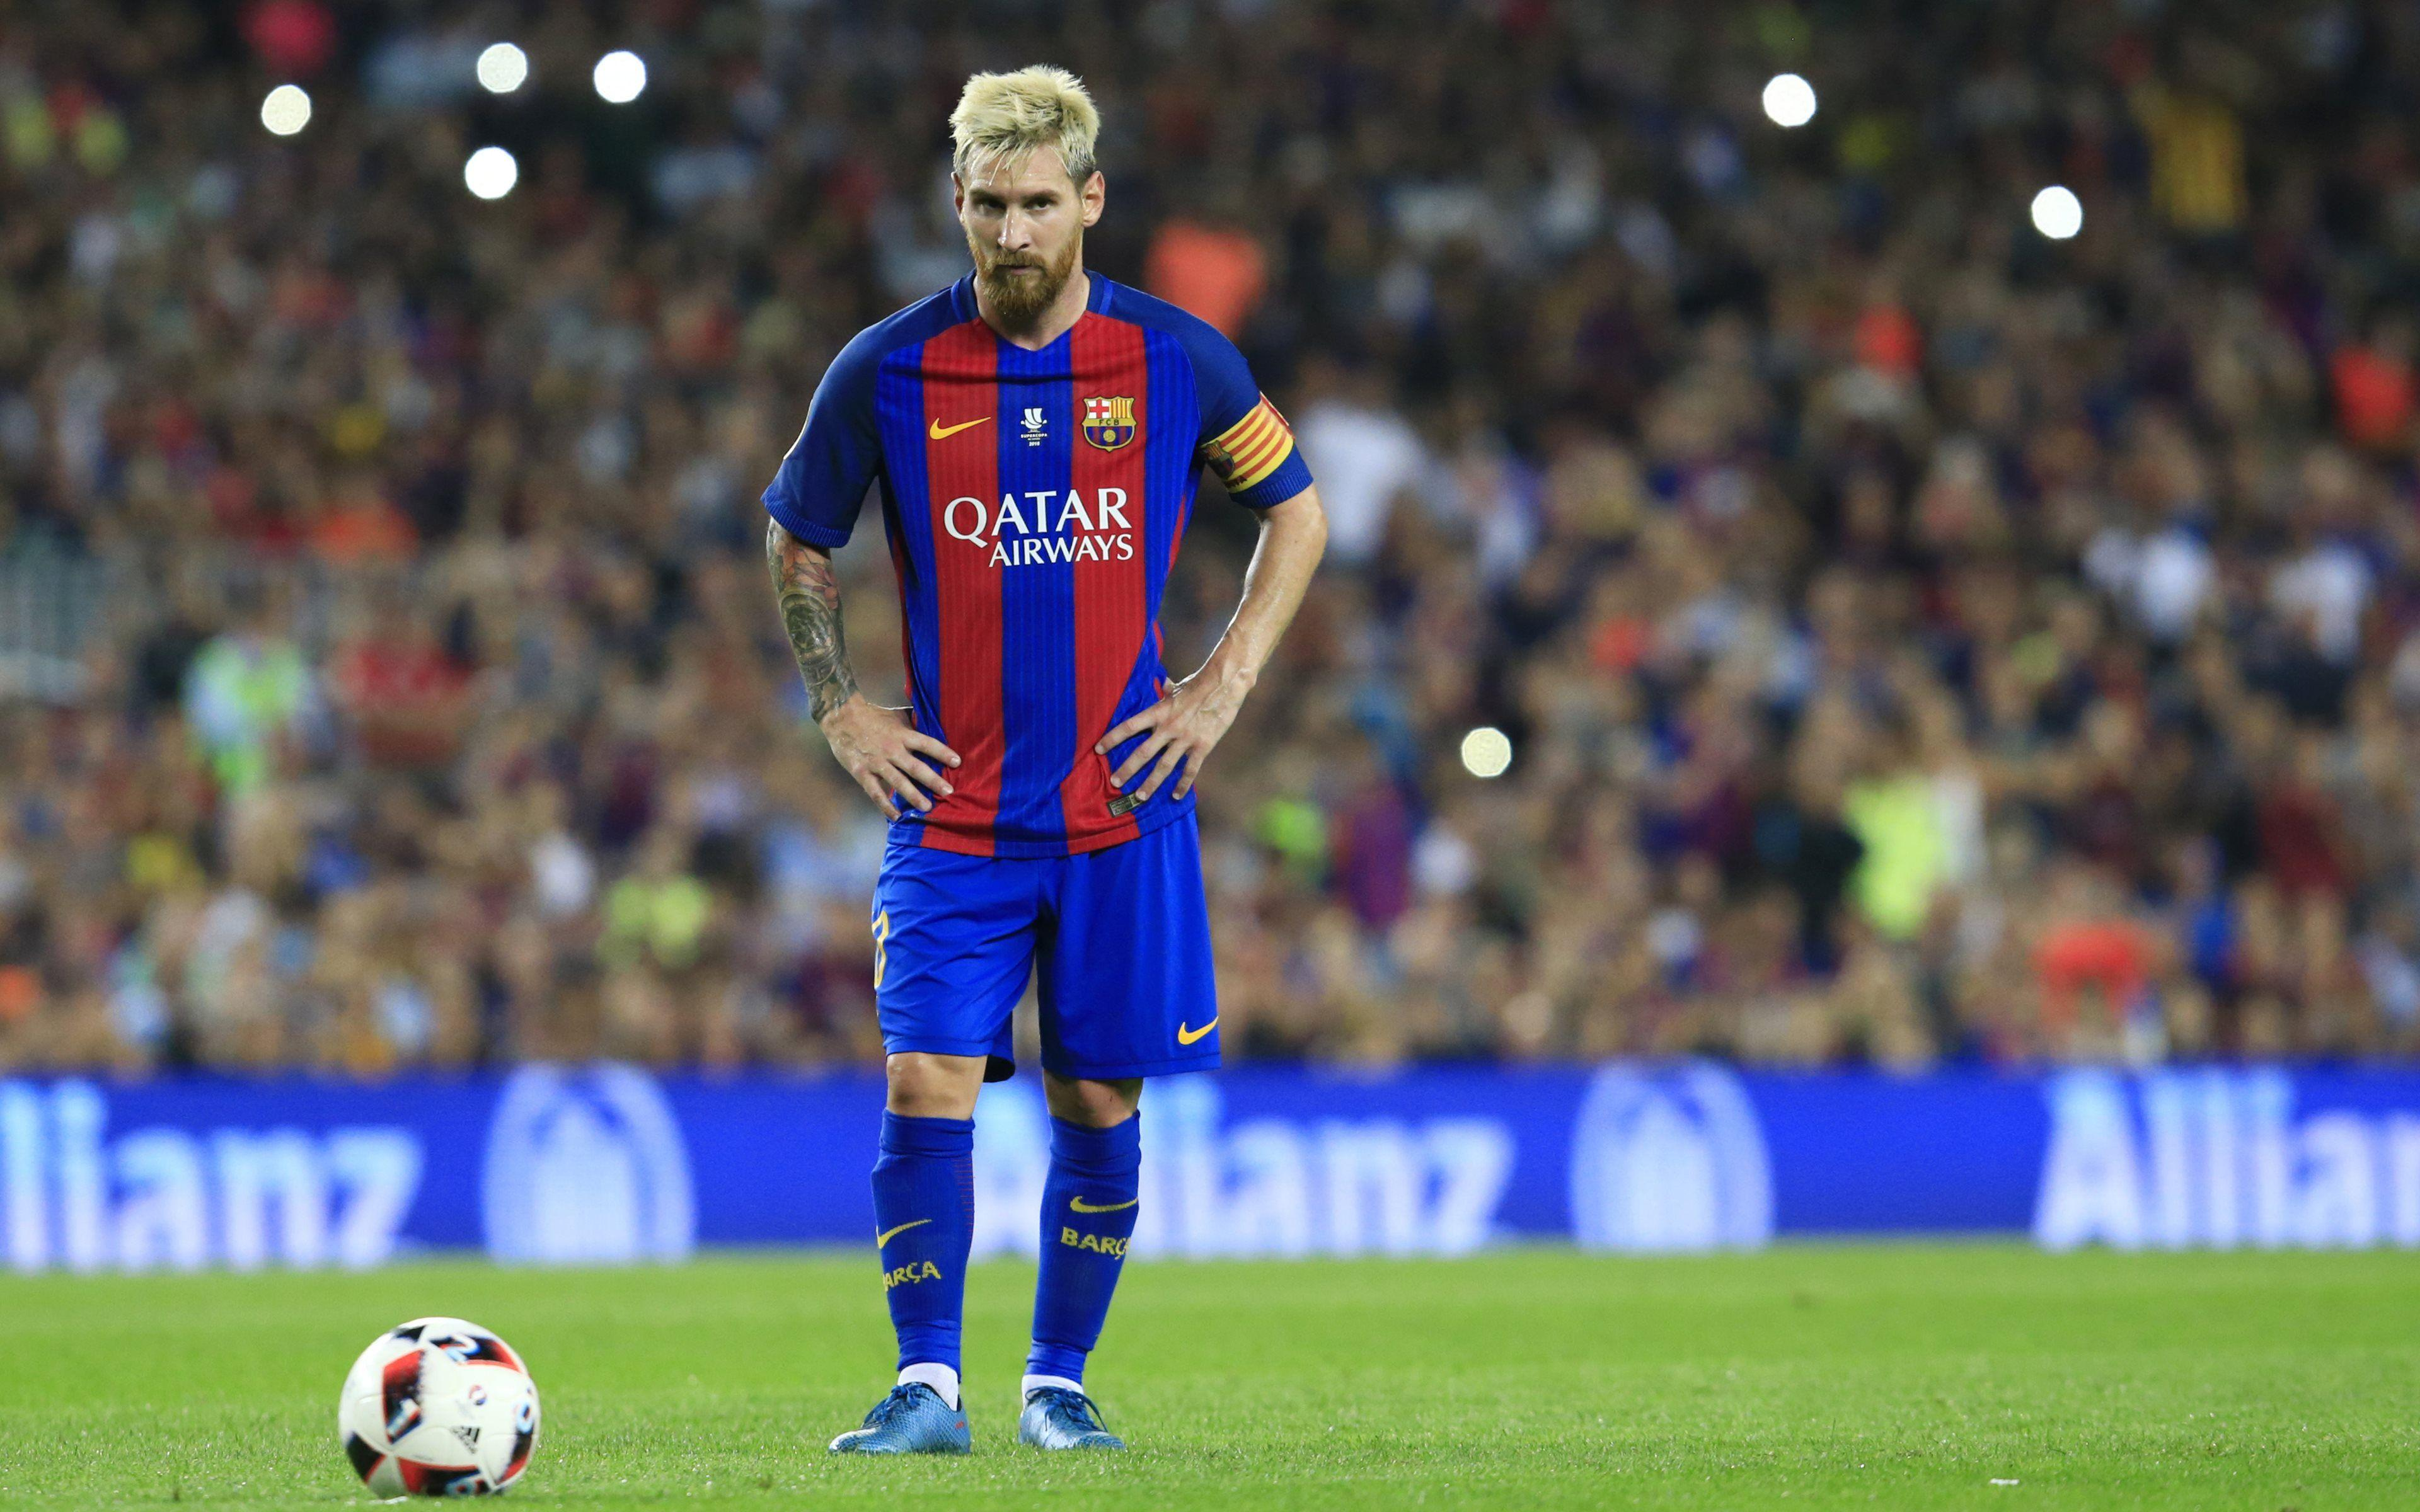 Download 4k wallpapers Lionel Messi, football stars, Barca, match